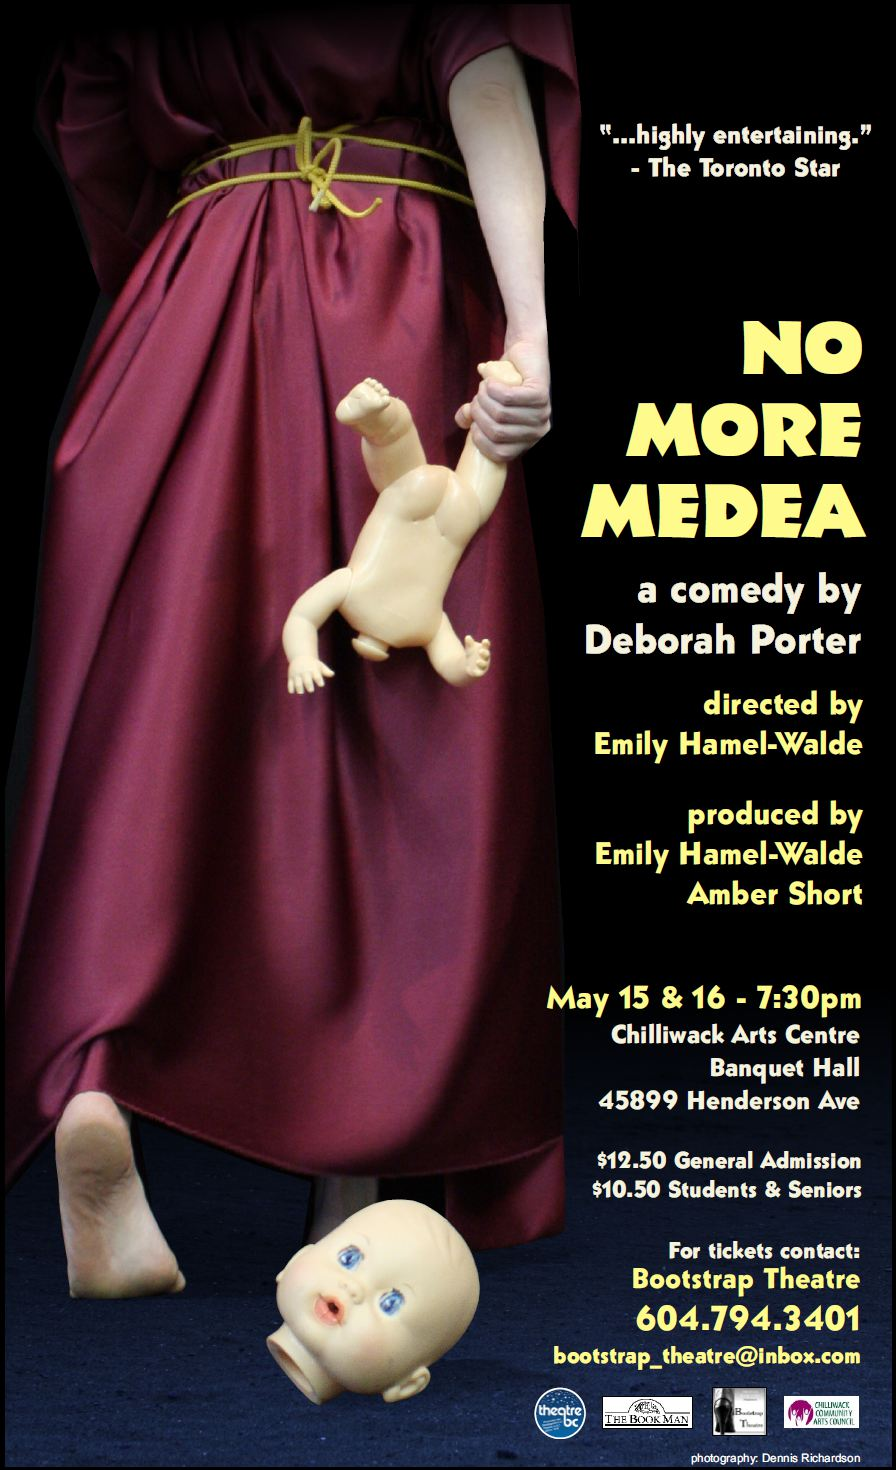 No More Medea